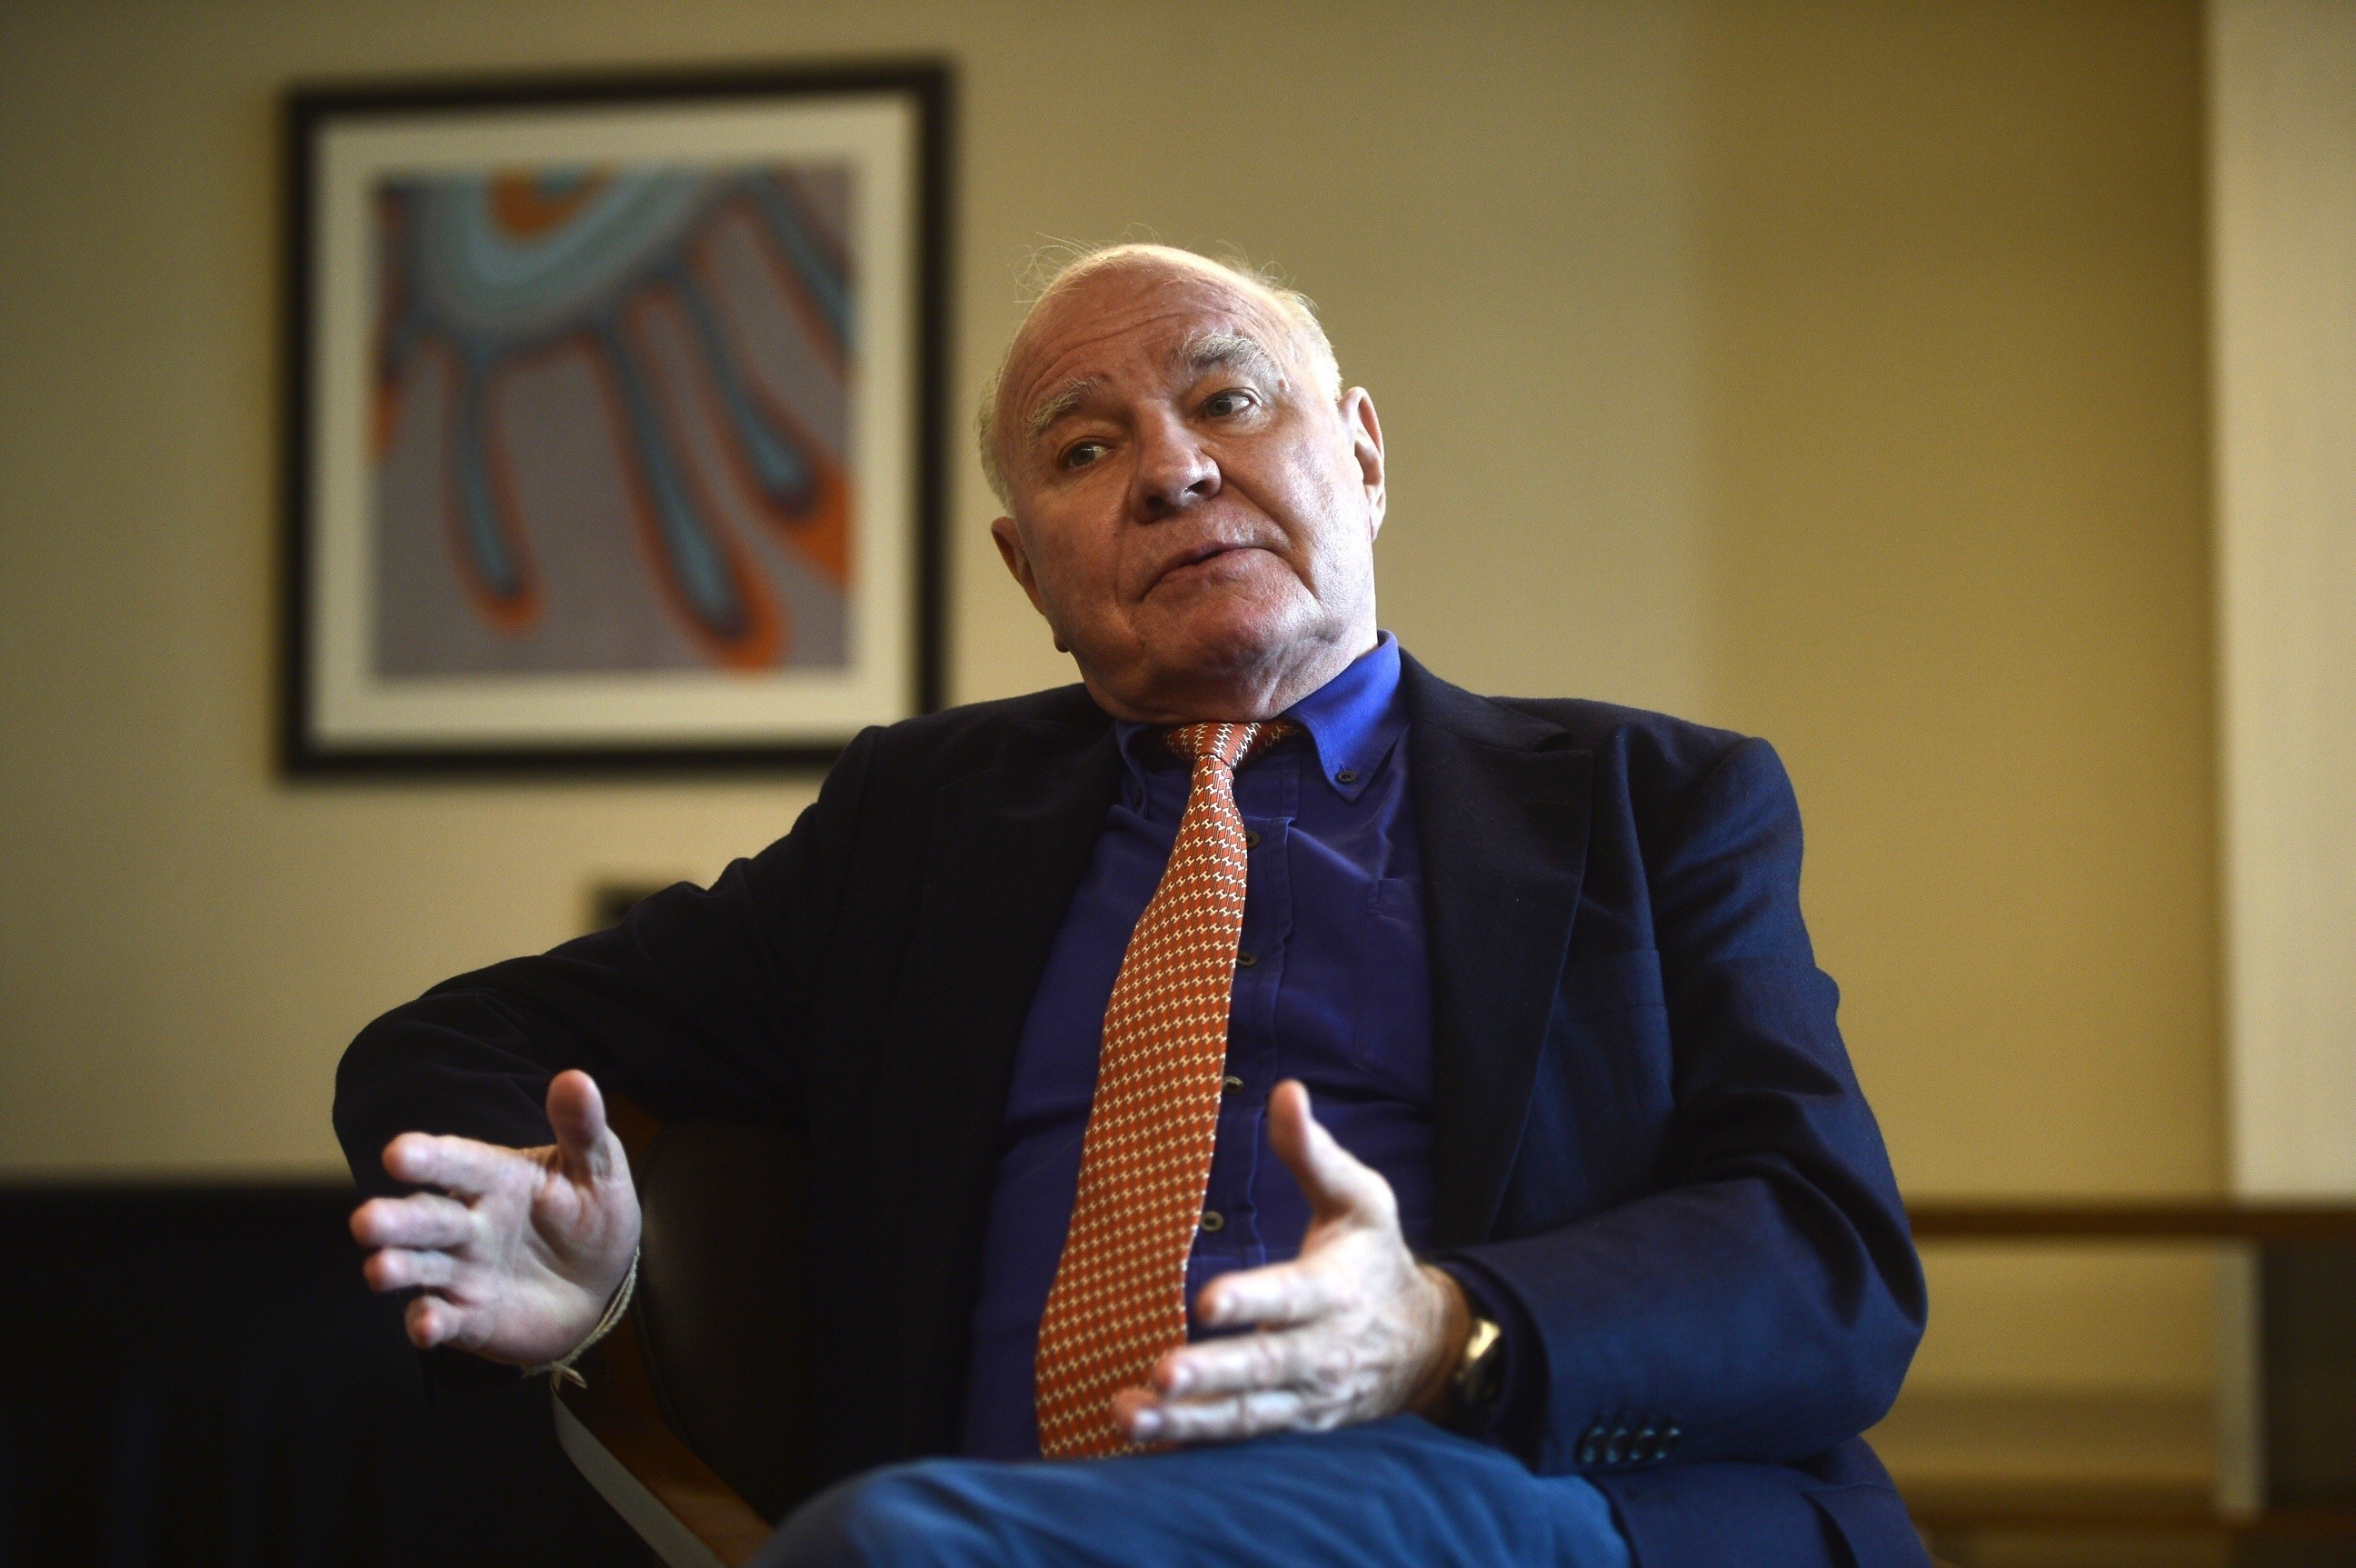 Swiss investor Marc Faber in Istanbul